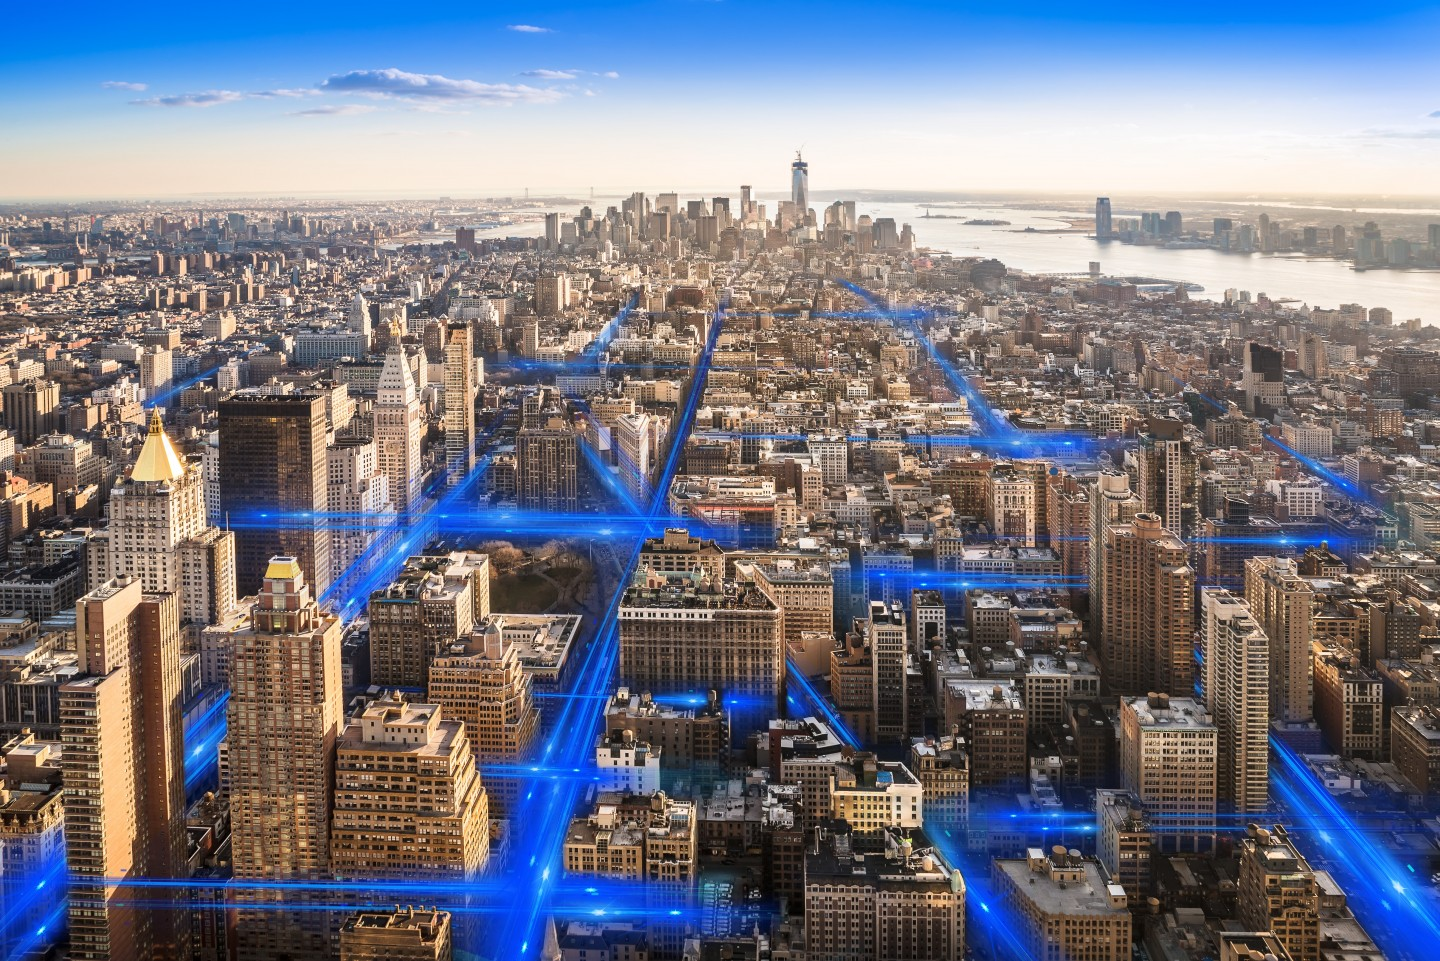 Partnership Between Webair and DE-CIX Brings Direct Peering Services to NY1 Data Center